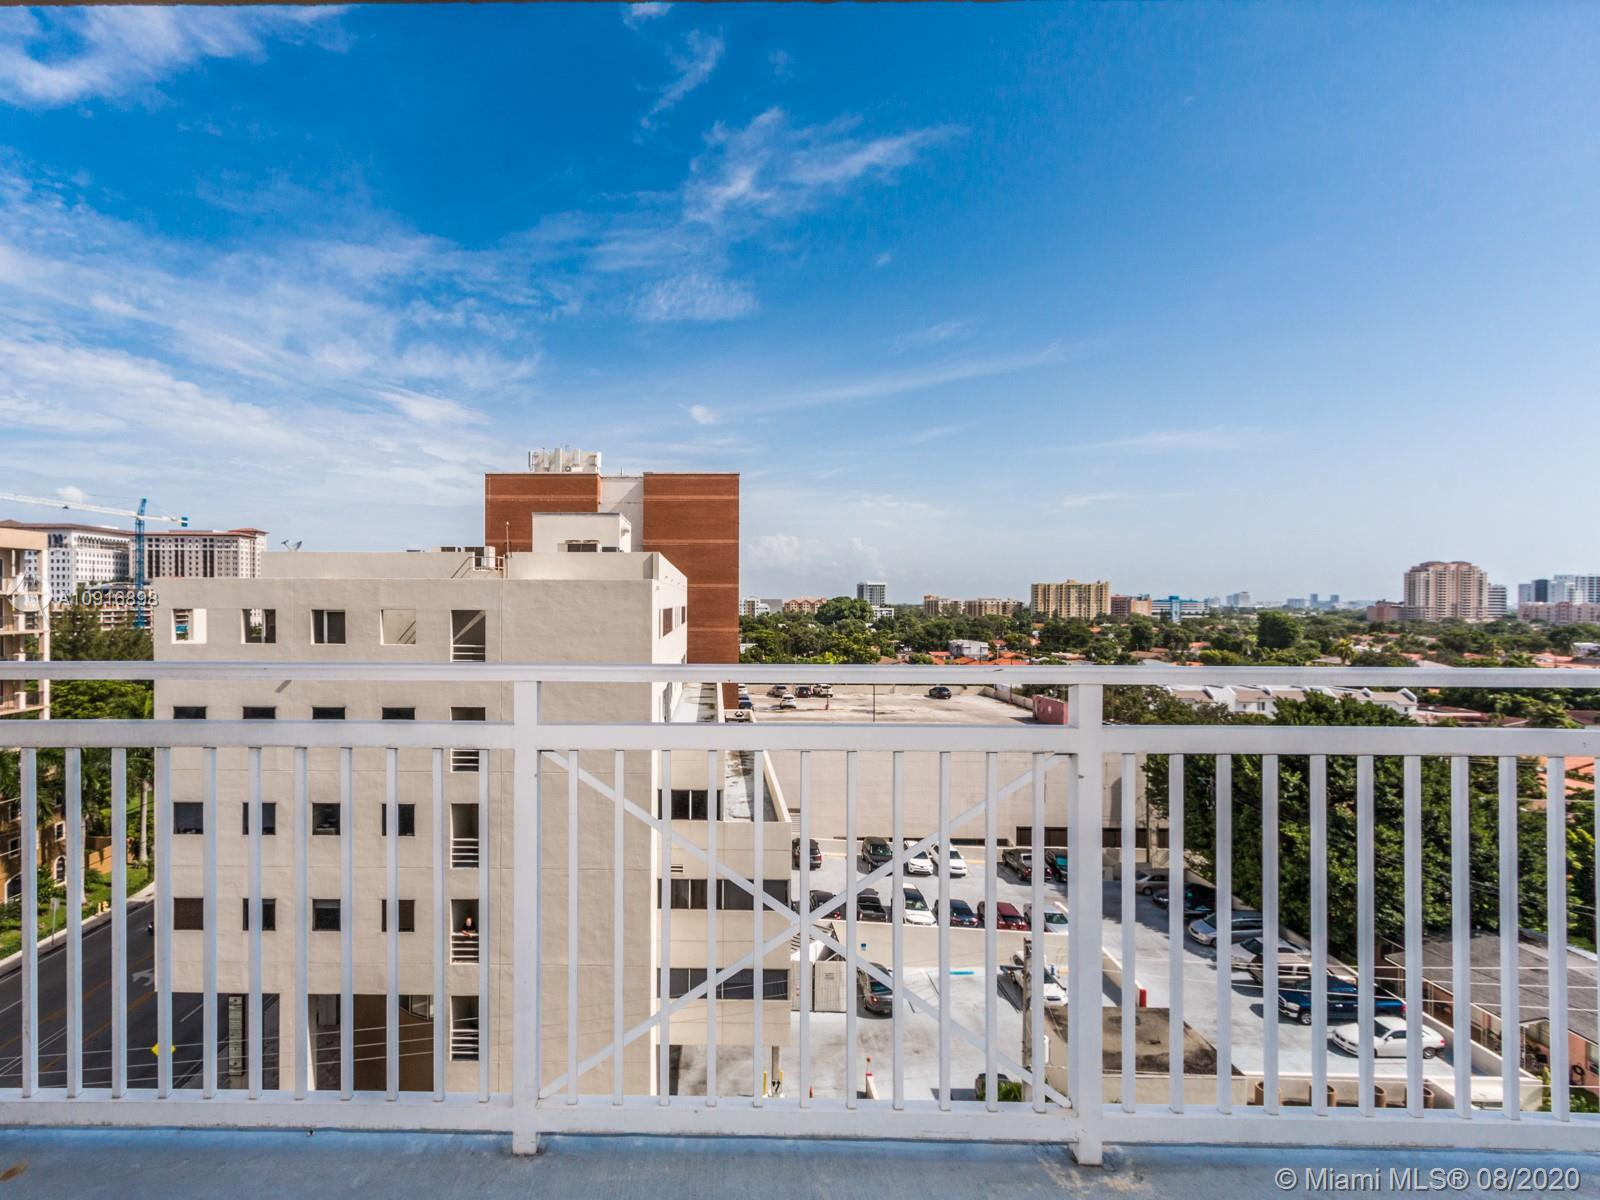 Great Investment and currently rented until July 2021. Centrally located, just minutes from Coral Gables, Coconut Grove, restaurants, shopping areas, and public transportation. Large corner unit, two bedrooms and two baths. This building has a great gym and pool area, as well as a stylish lobby and excellent security, with 1 assigned parking space.